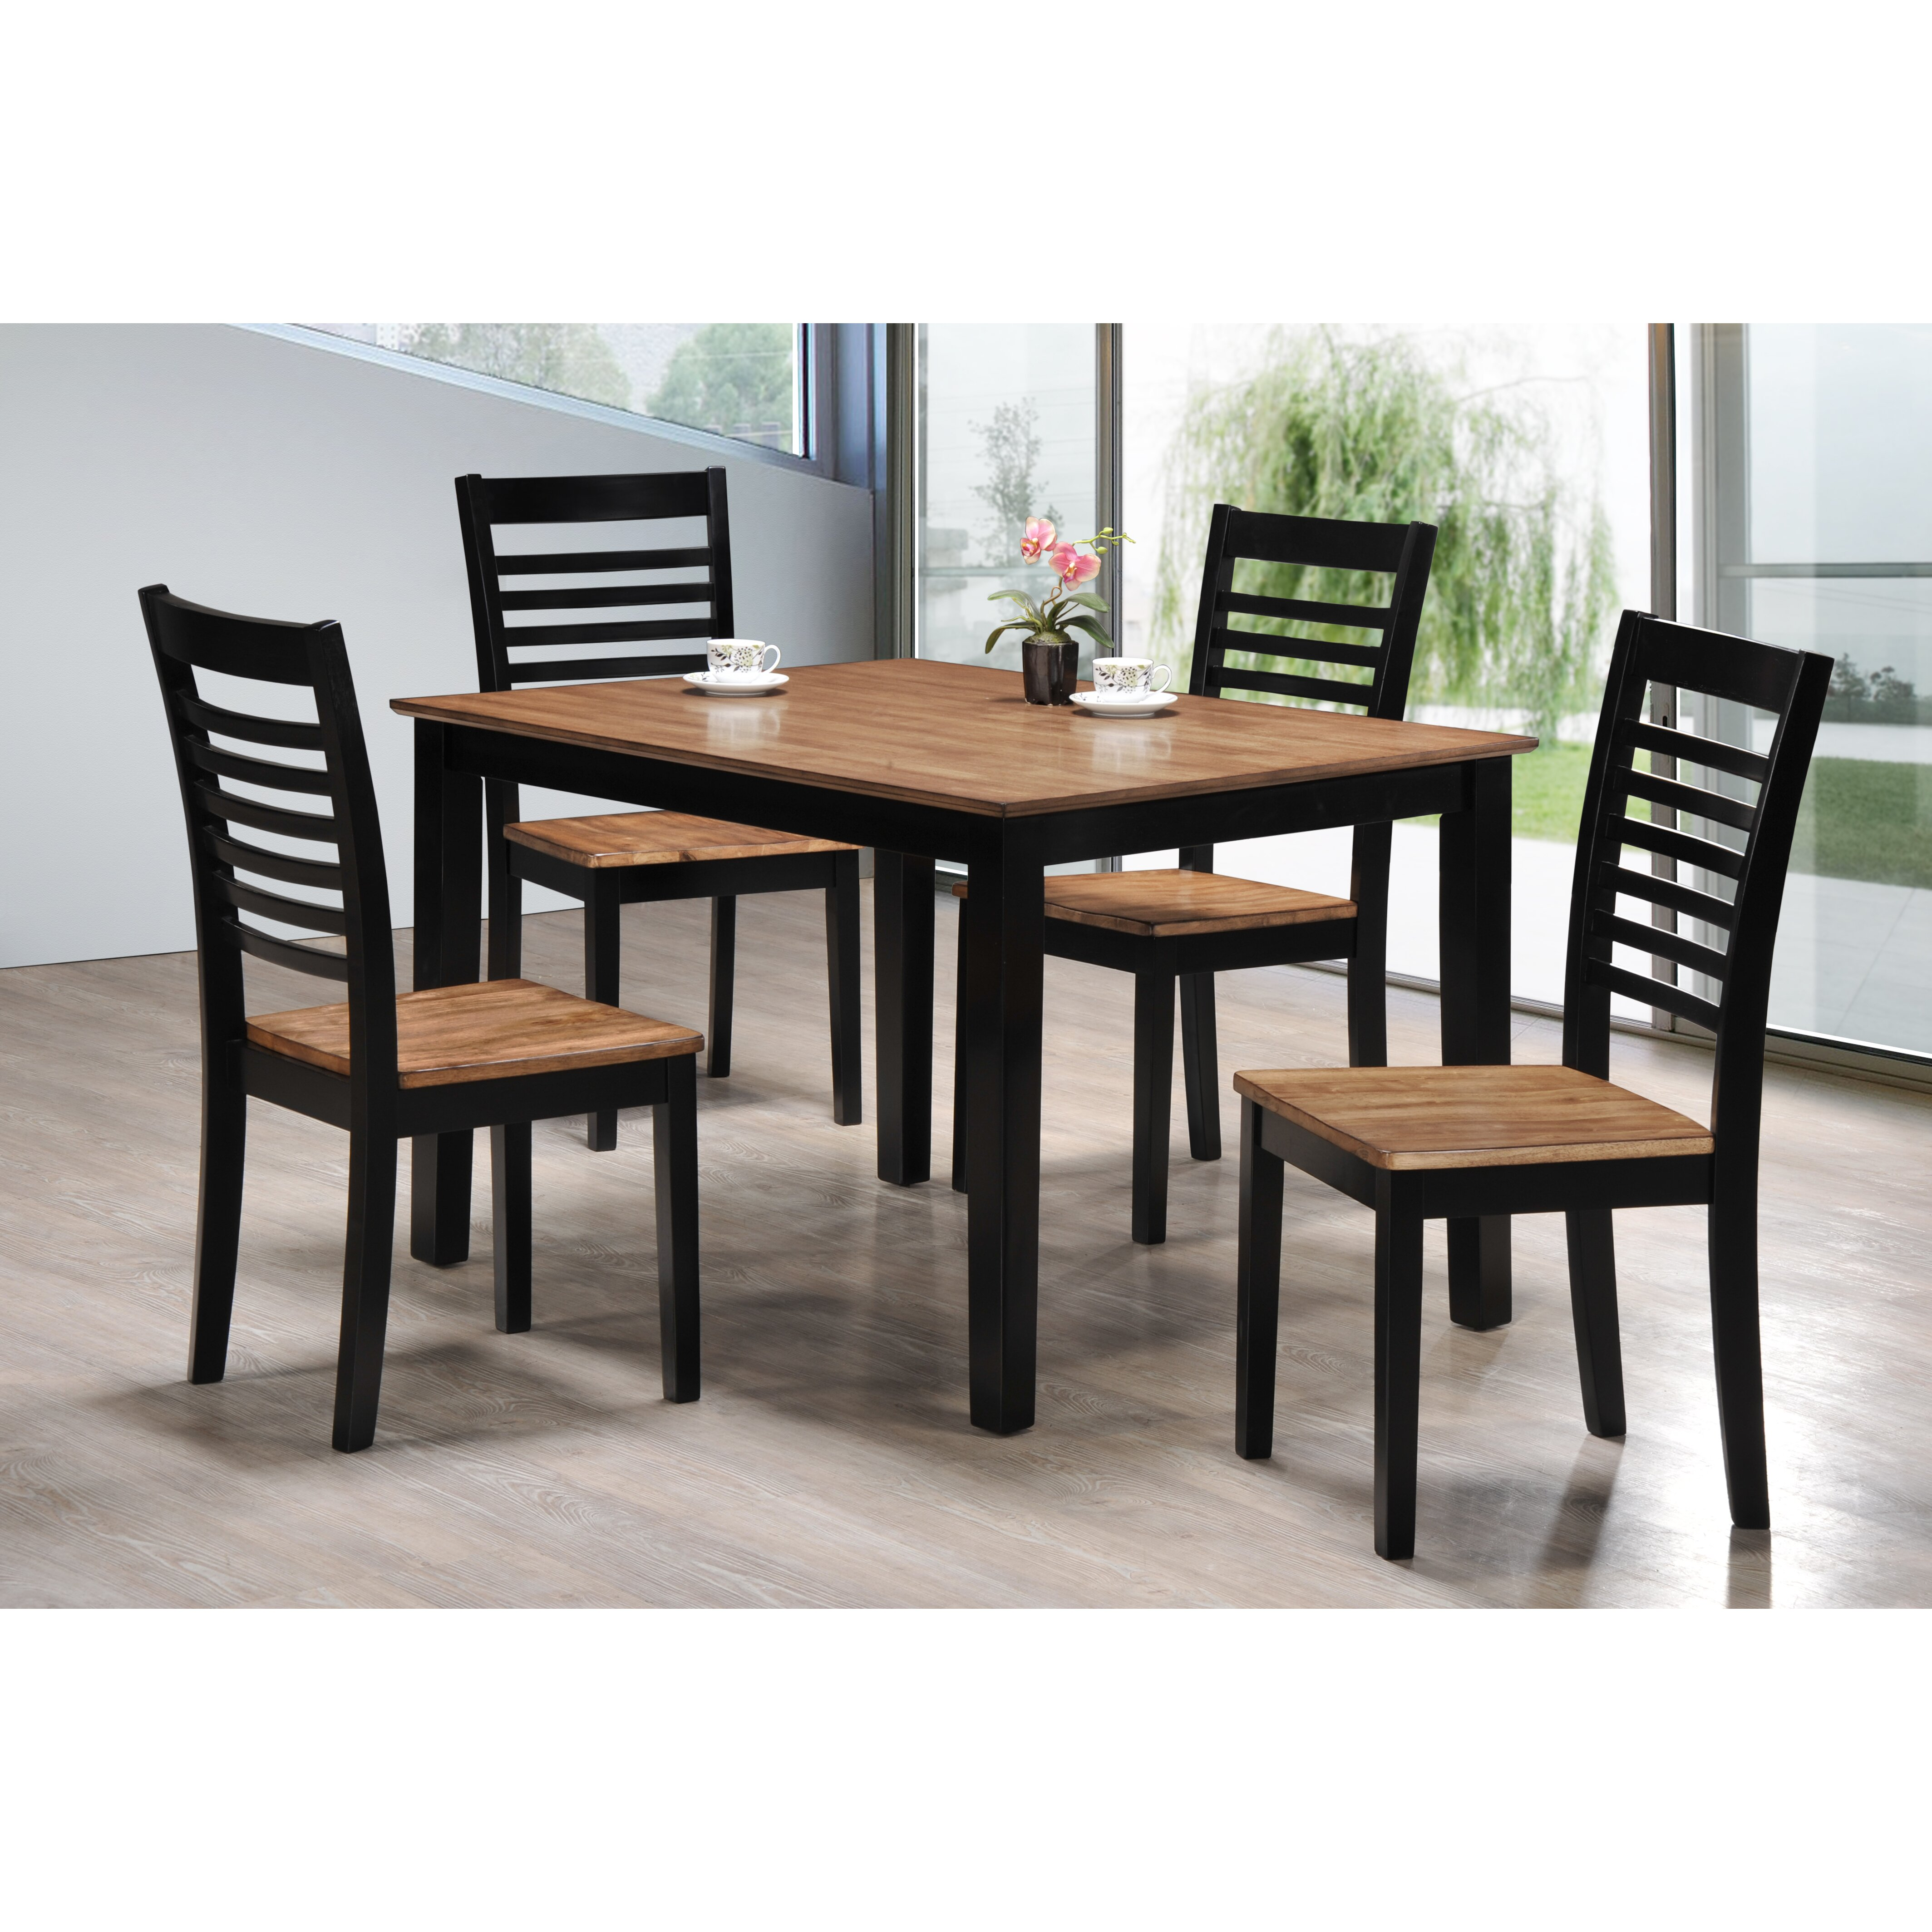 Red Dining Set: Red Barrel Studio Gold Rush 5 Piece Dining Set By Simmons